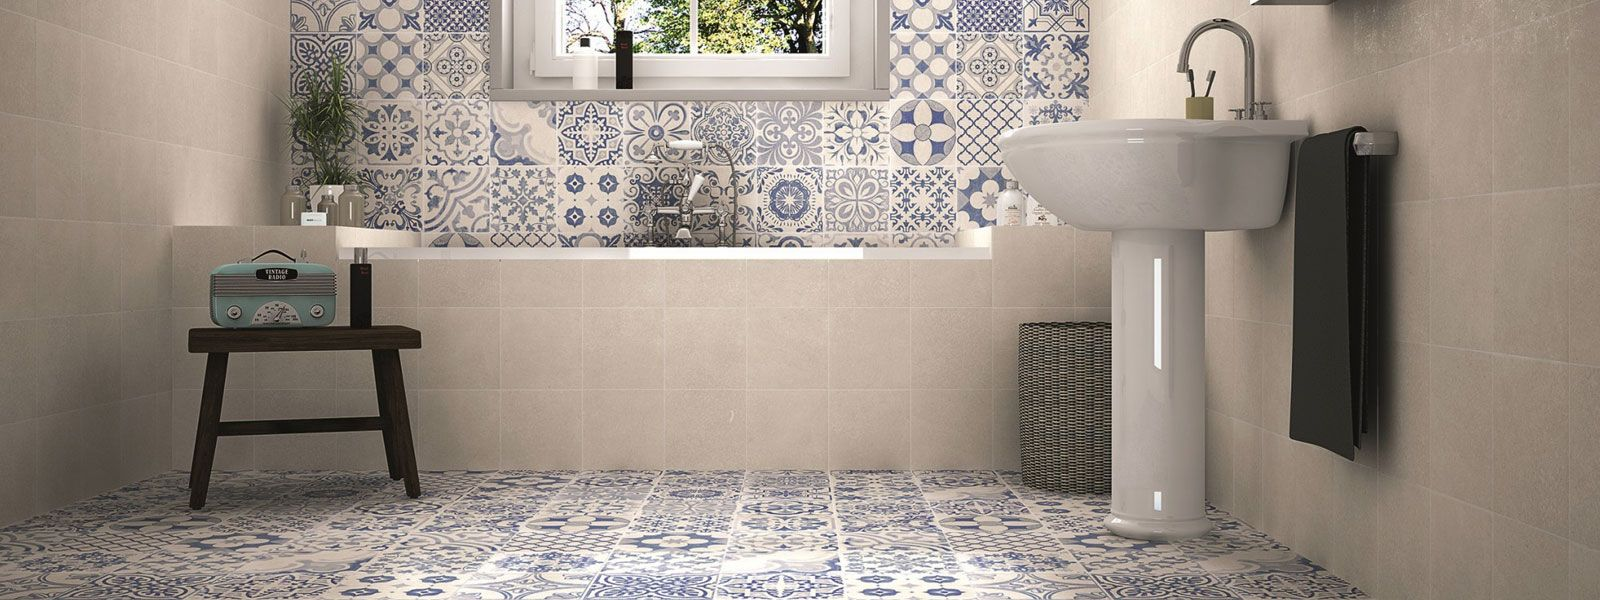 Gib Tiling Perth Provide Advice Consulting And Quotes To Complete